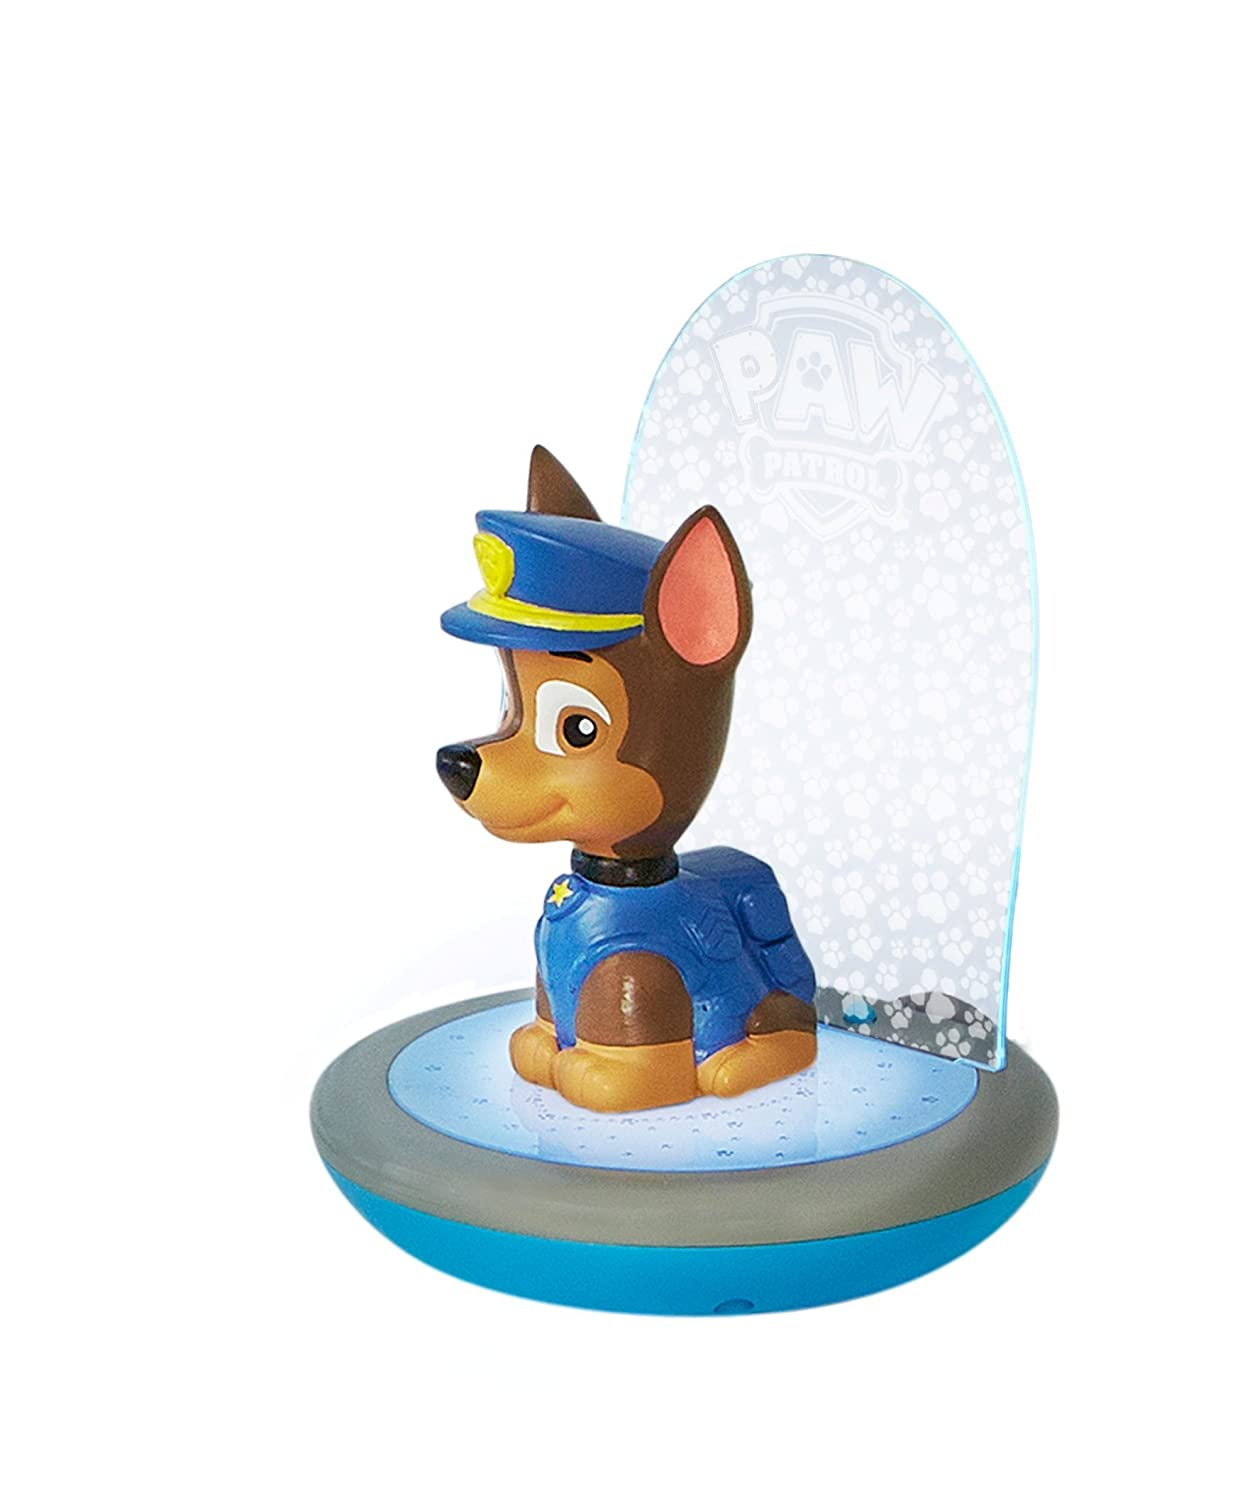 Paw Patrol Magic Night Light - Chase Kids Torch and Projector by Go Glow   Amazon.co.uk  Toys   Games 99a692863a2c